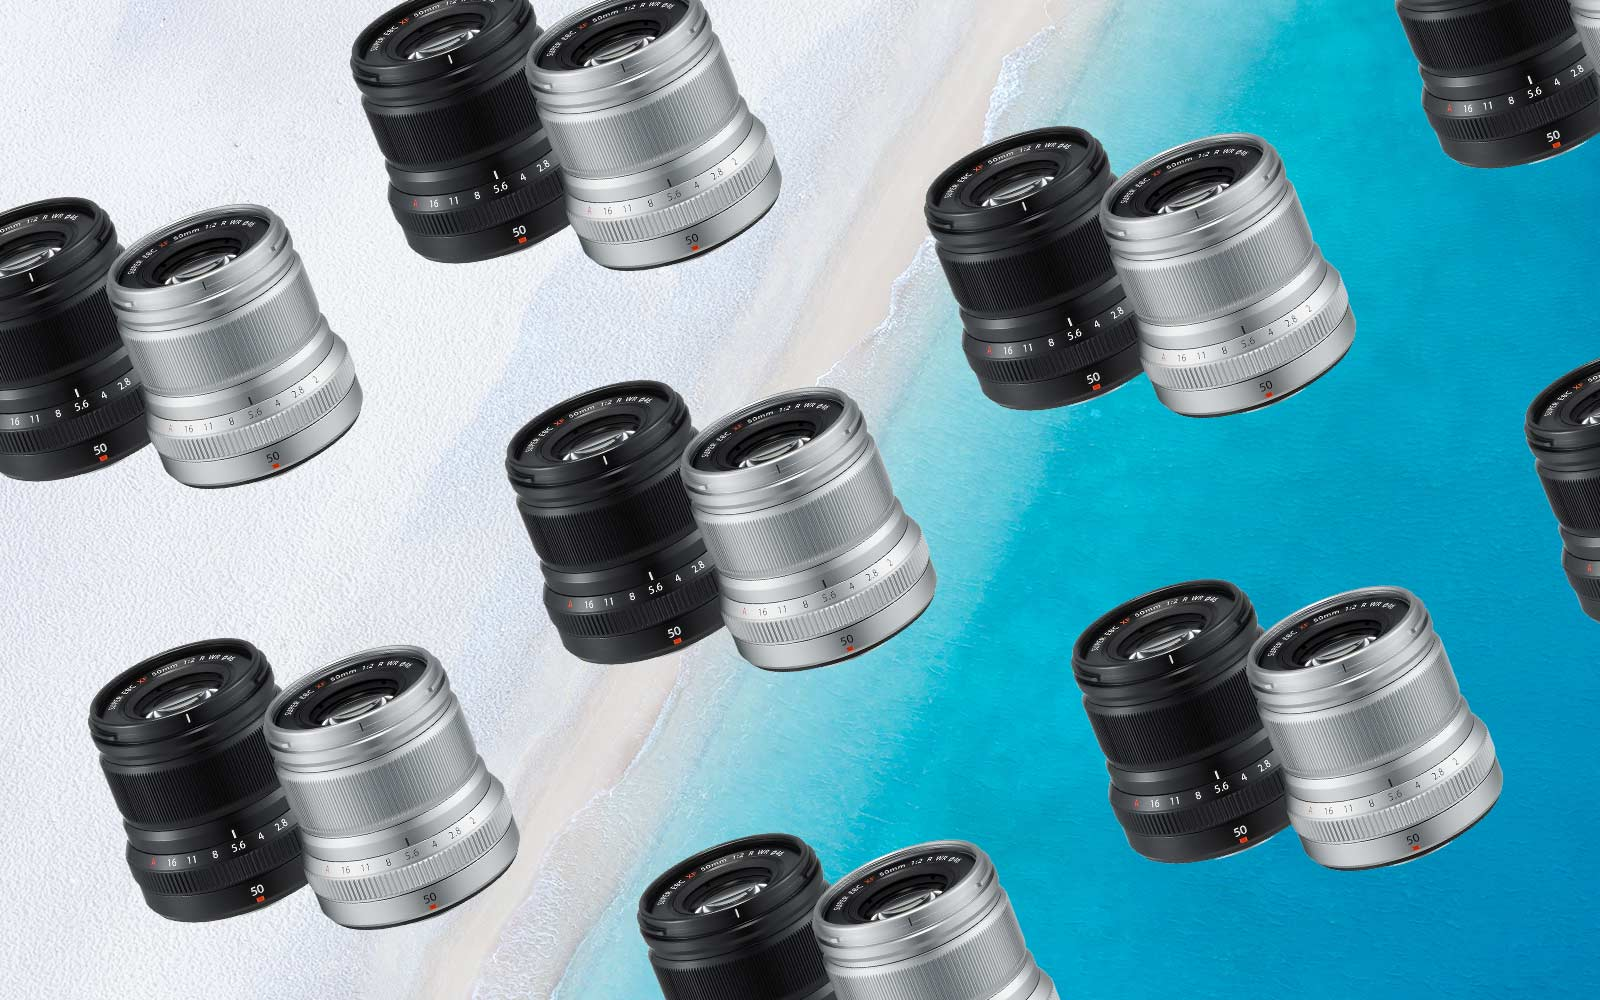 This New Camera Lens Is Perfect for Your Next Vacation